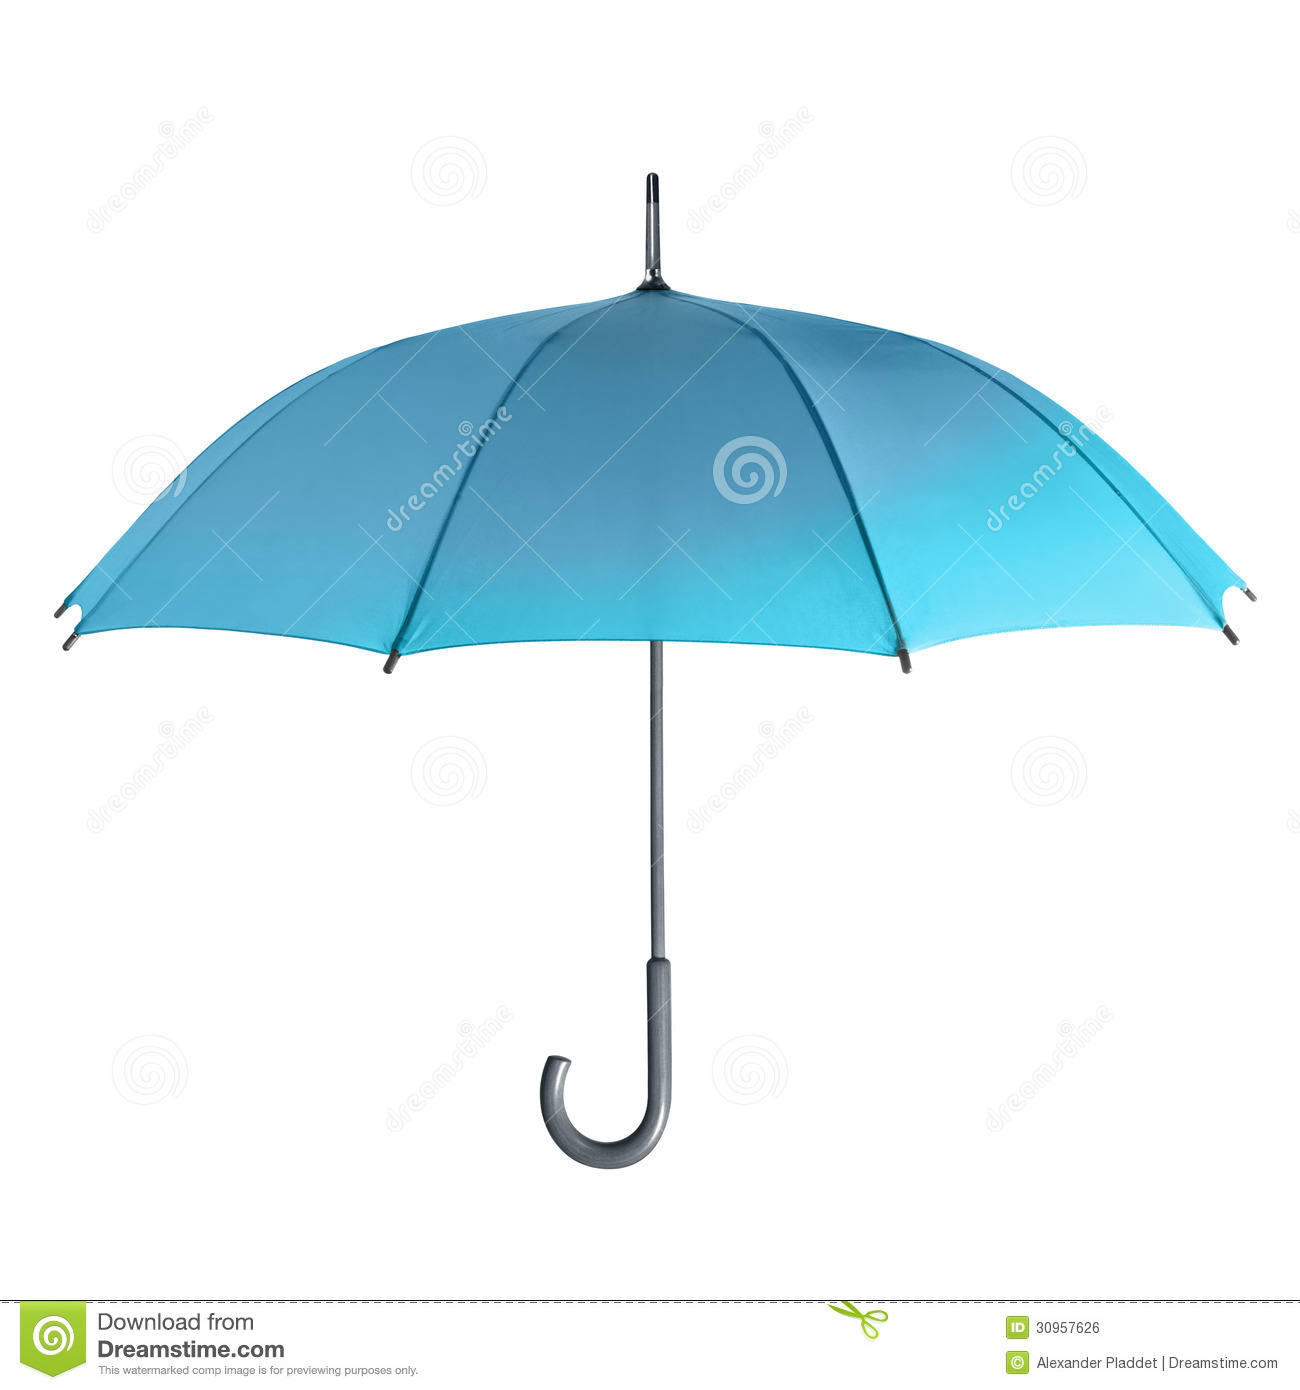 Umbrella Royalty Free Stock Image - Image: 30957626